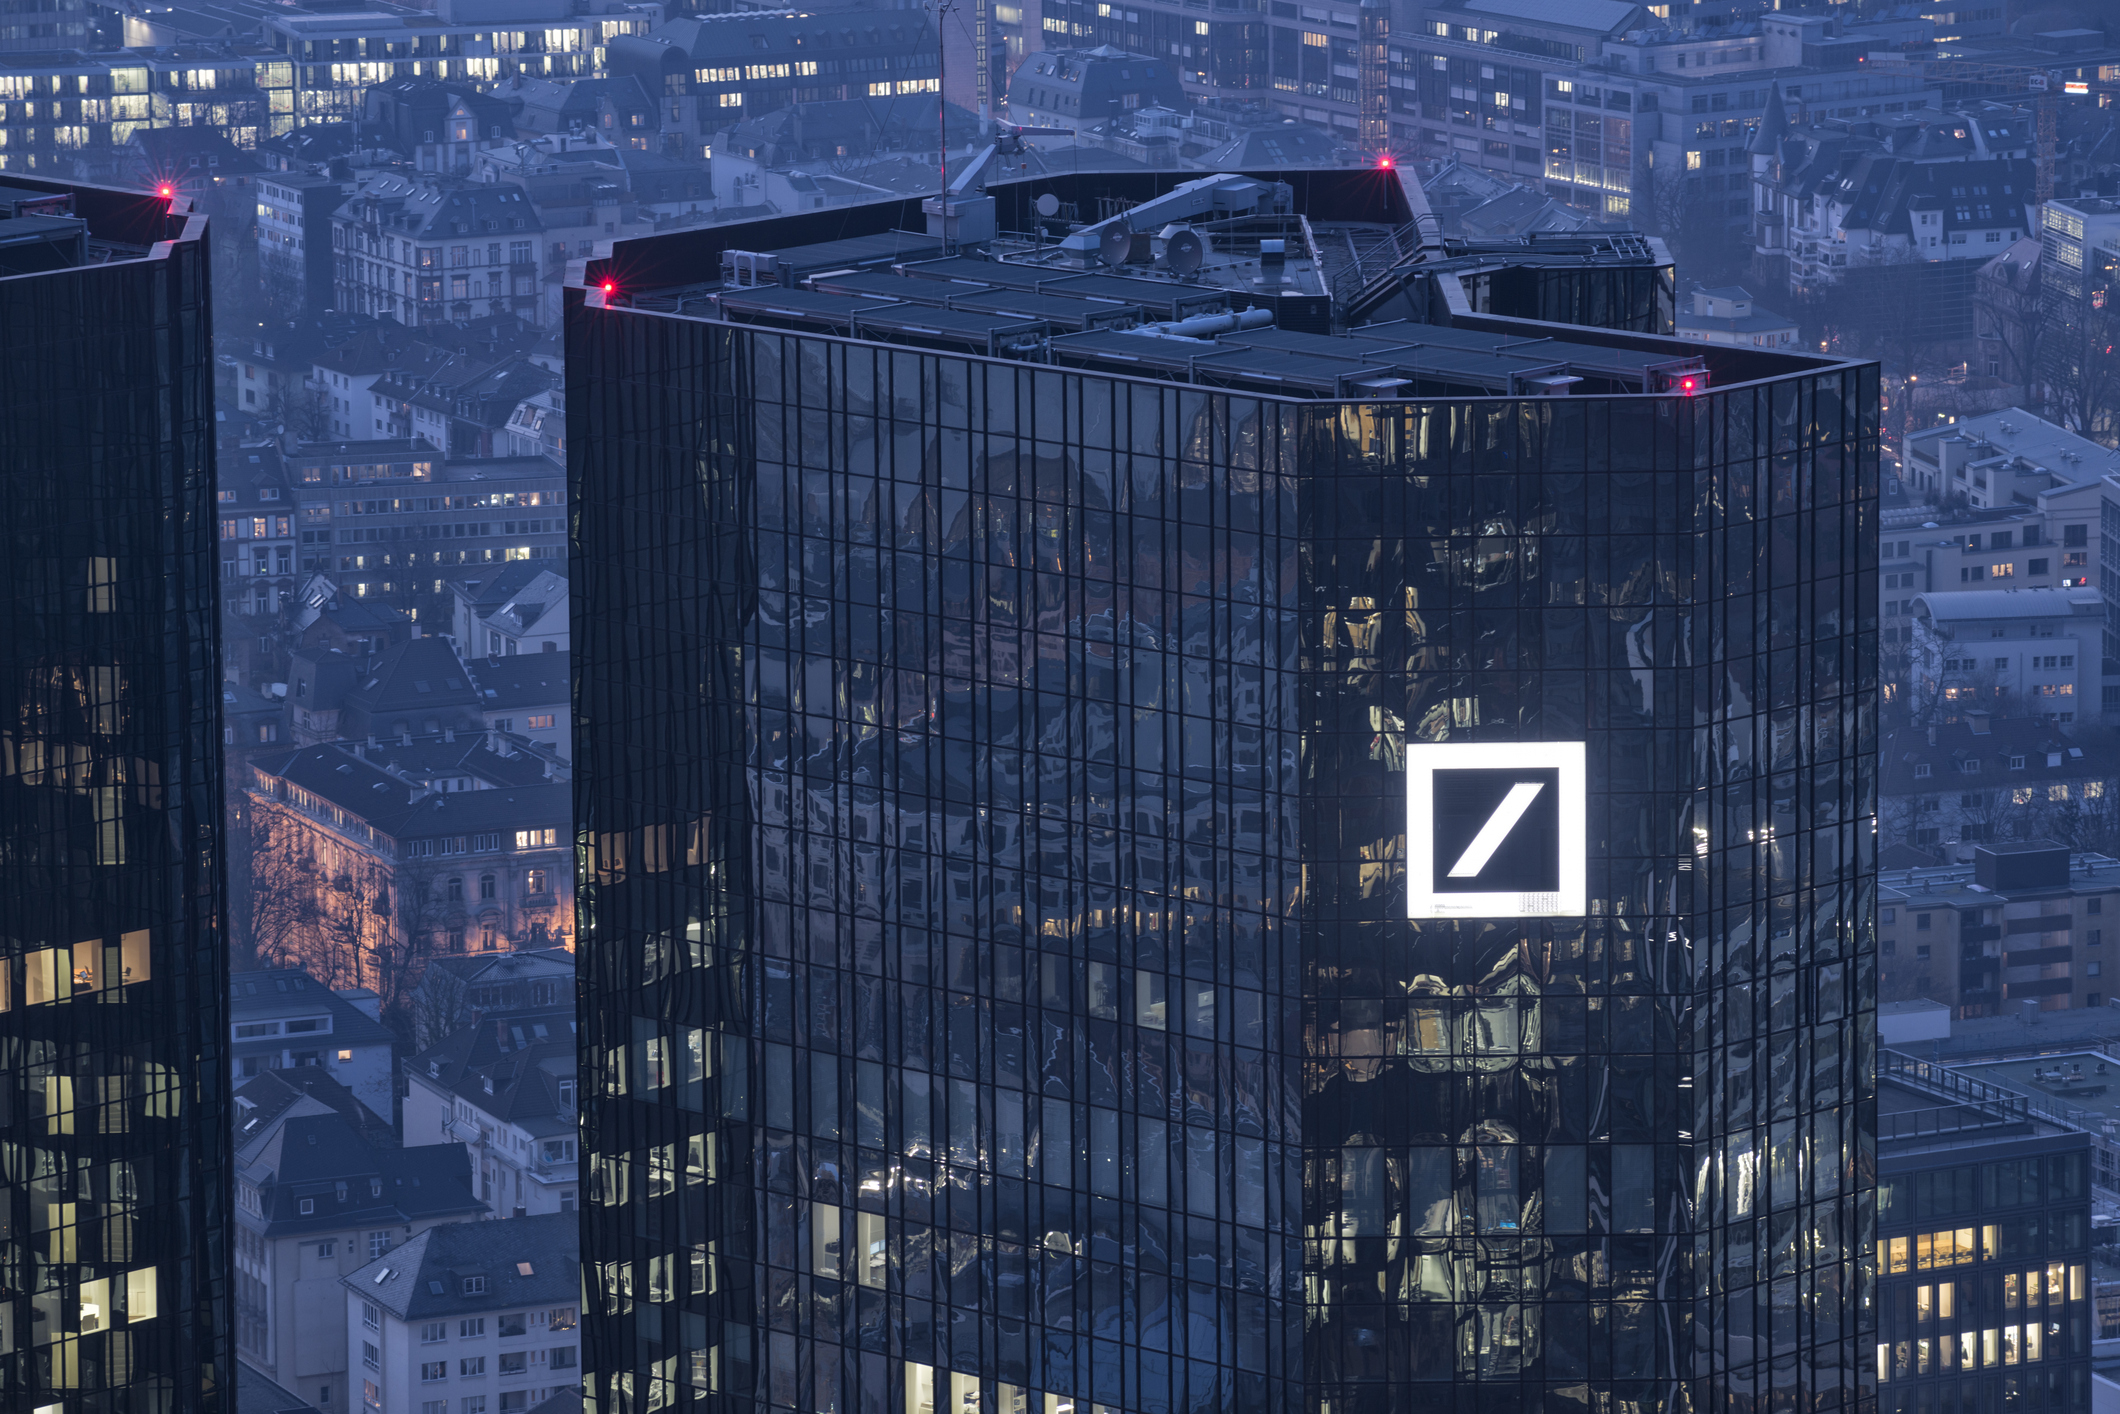 Deutsche Bank To Cut 7,000+ Jobs In Its Investment Banking